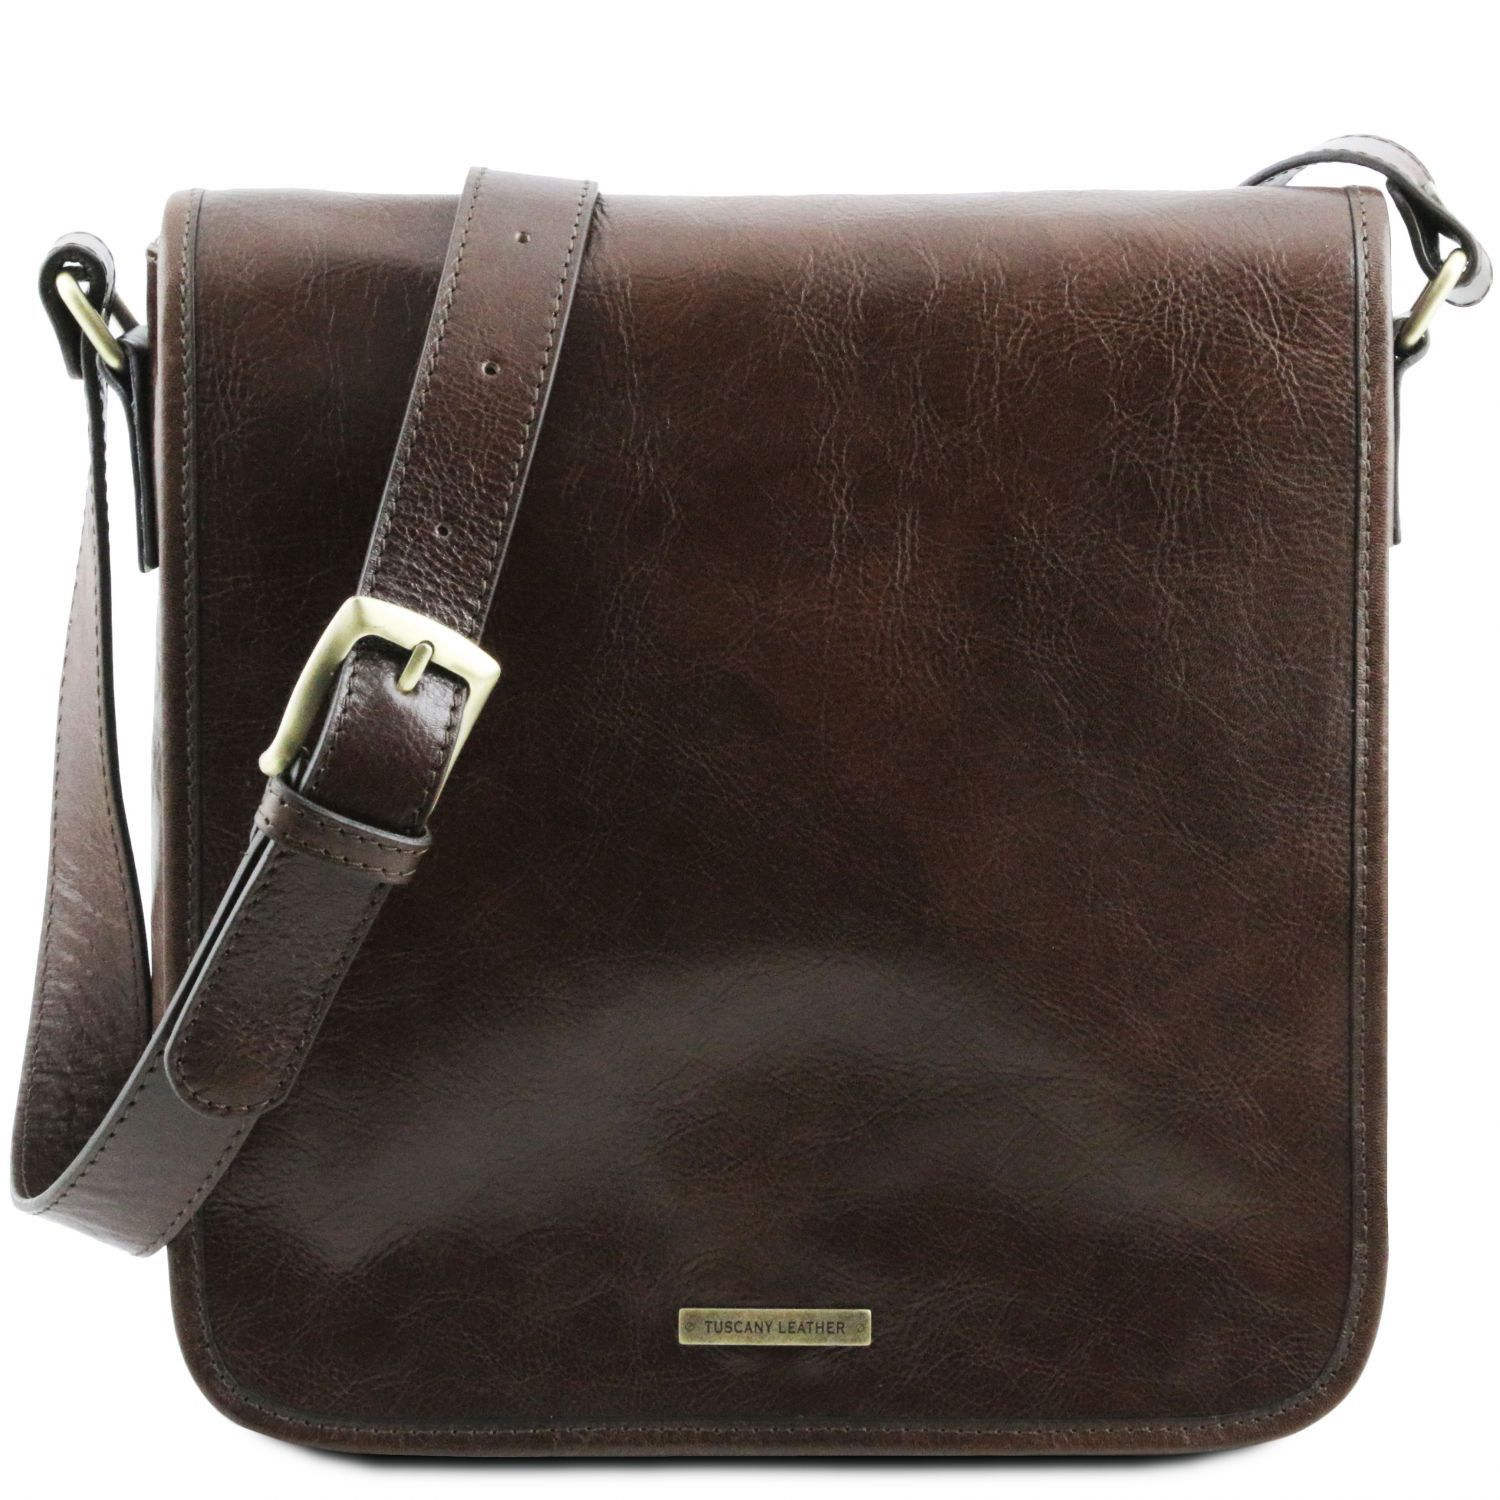 TL Messenger - One compartment leather shoulder bag (TL141260) - Leather bags for men | DILUSSOBAGS